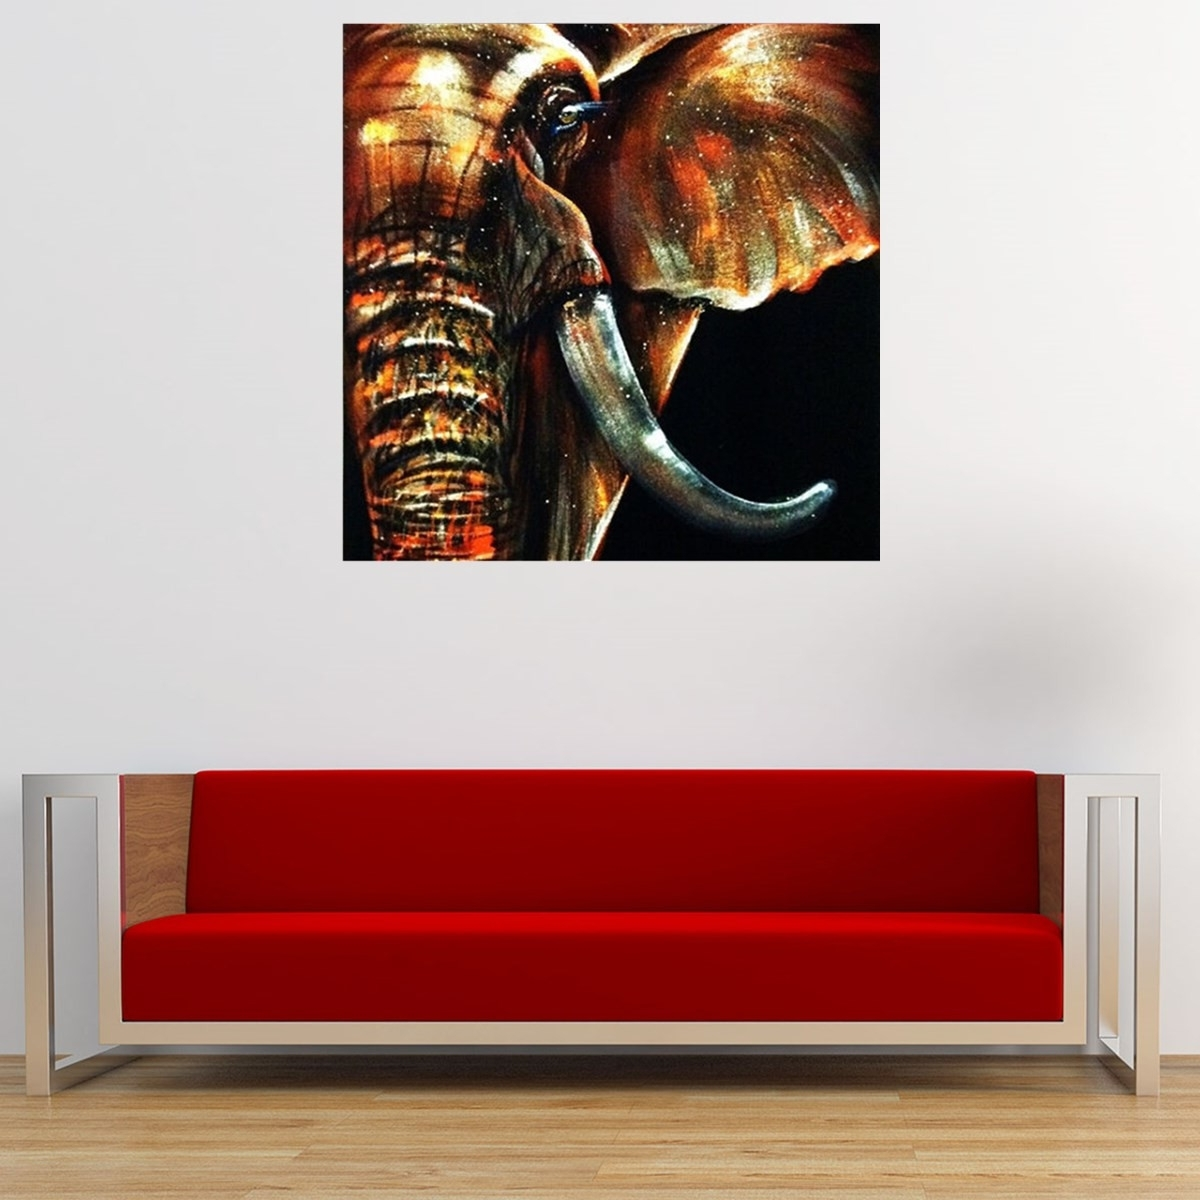 50X50Cm Modern Abstract Huge Elephant Wall Art Decor Oil Painting On With Regard To Most Popular Elephant Wall Art (Gallery 7 of 15)